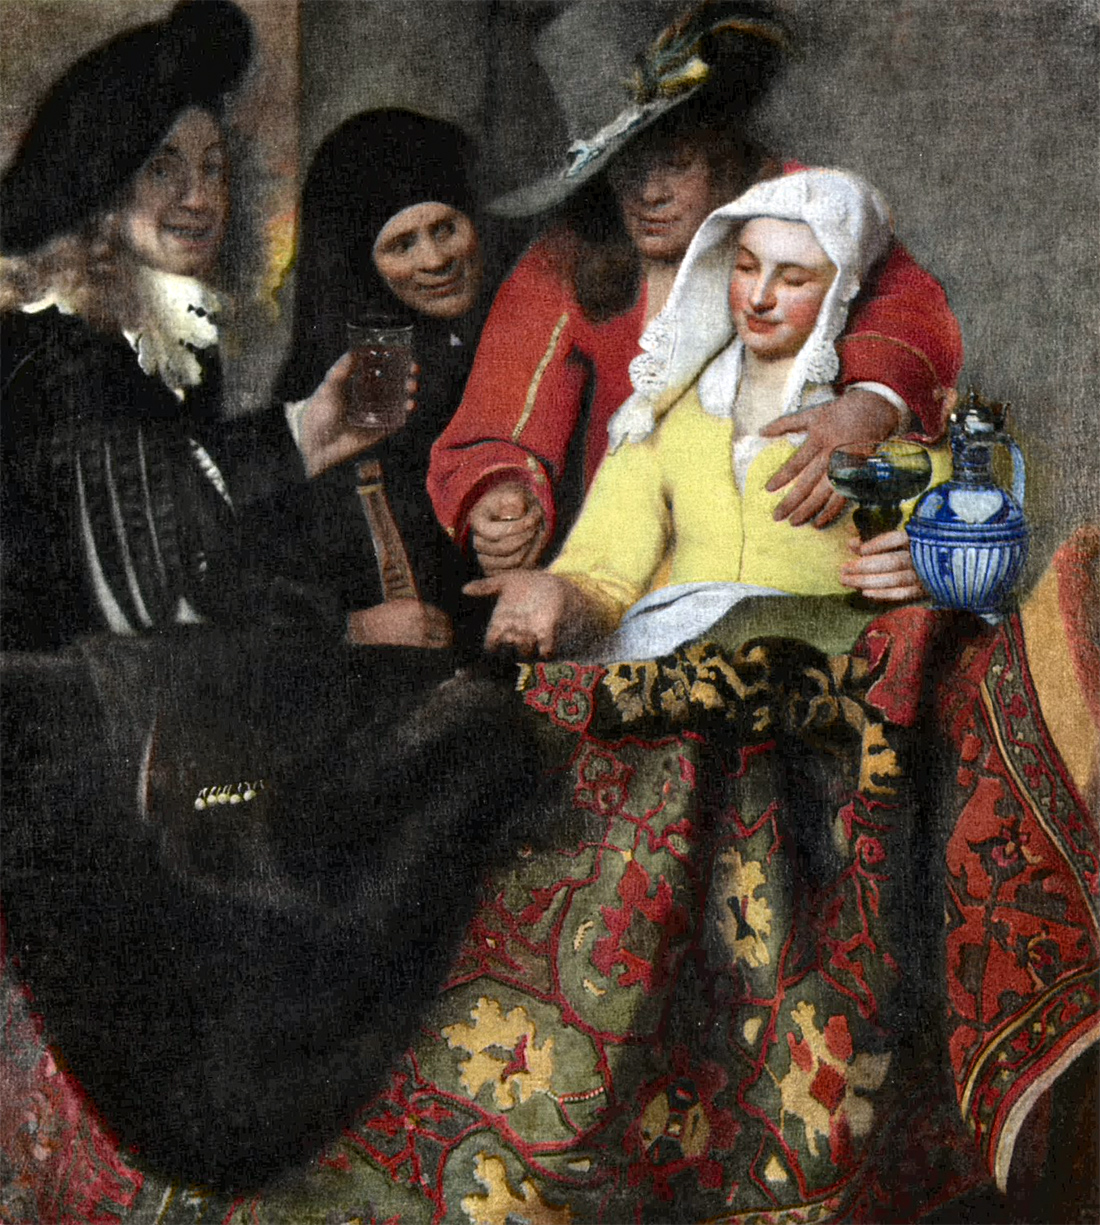 At the Procuress': The Courtesan, by Jan Vermeer, 1656. Gemäldegalerie Alte Meister, Dresden, Germany.